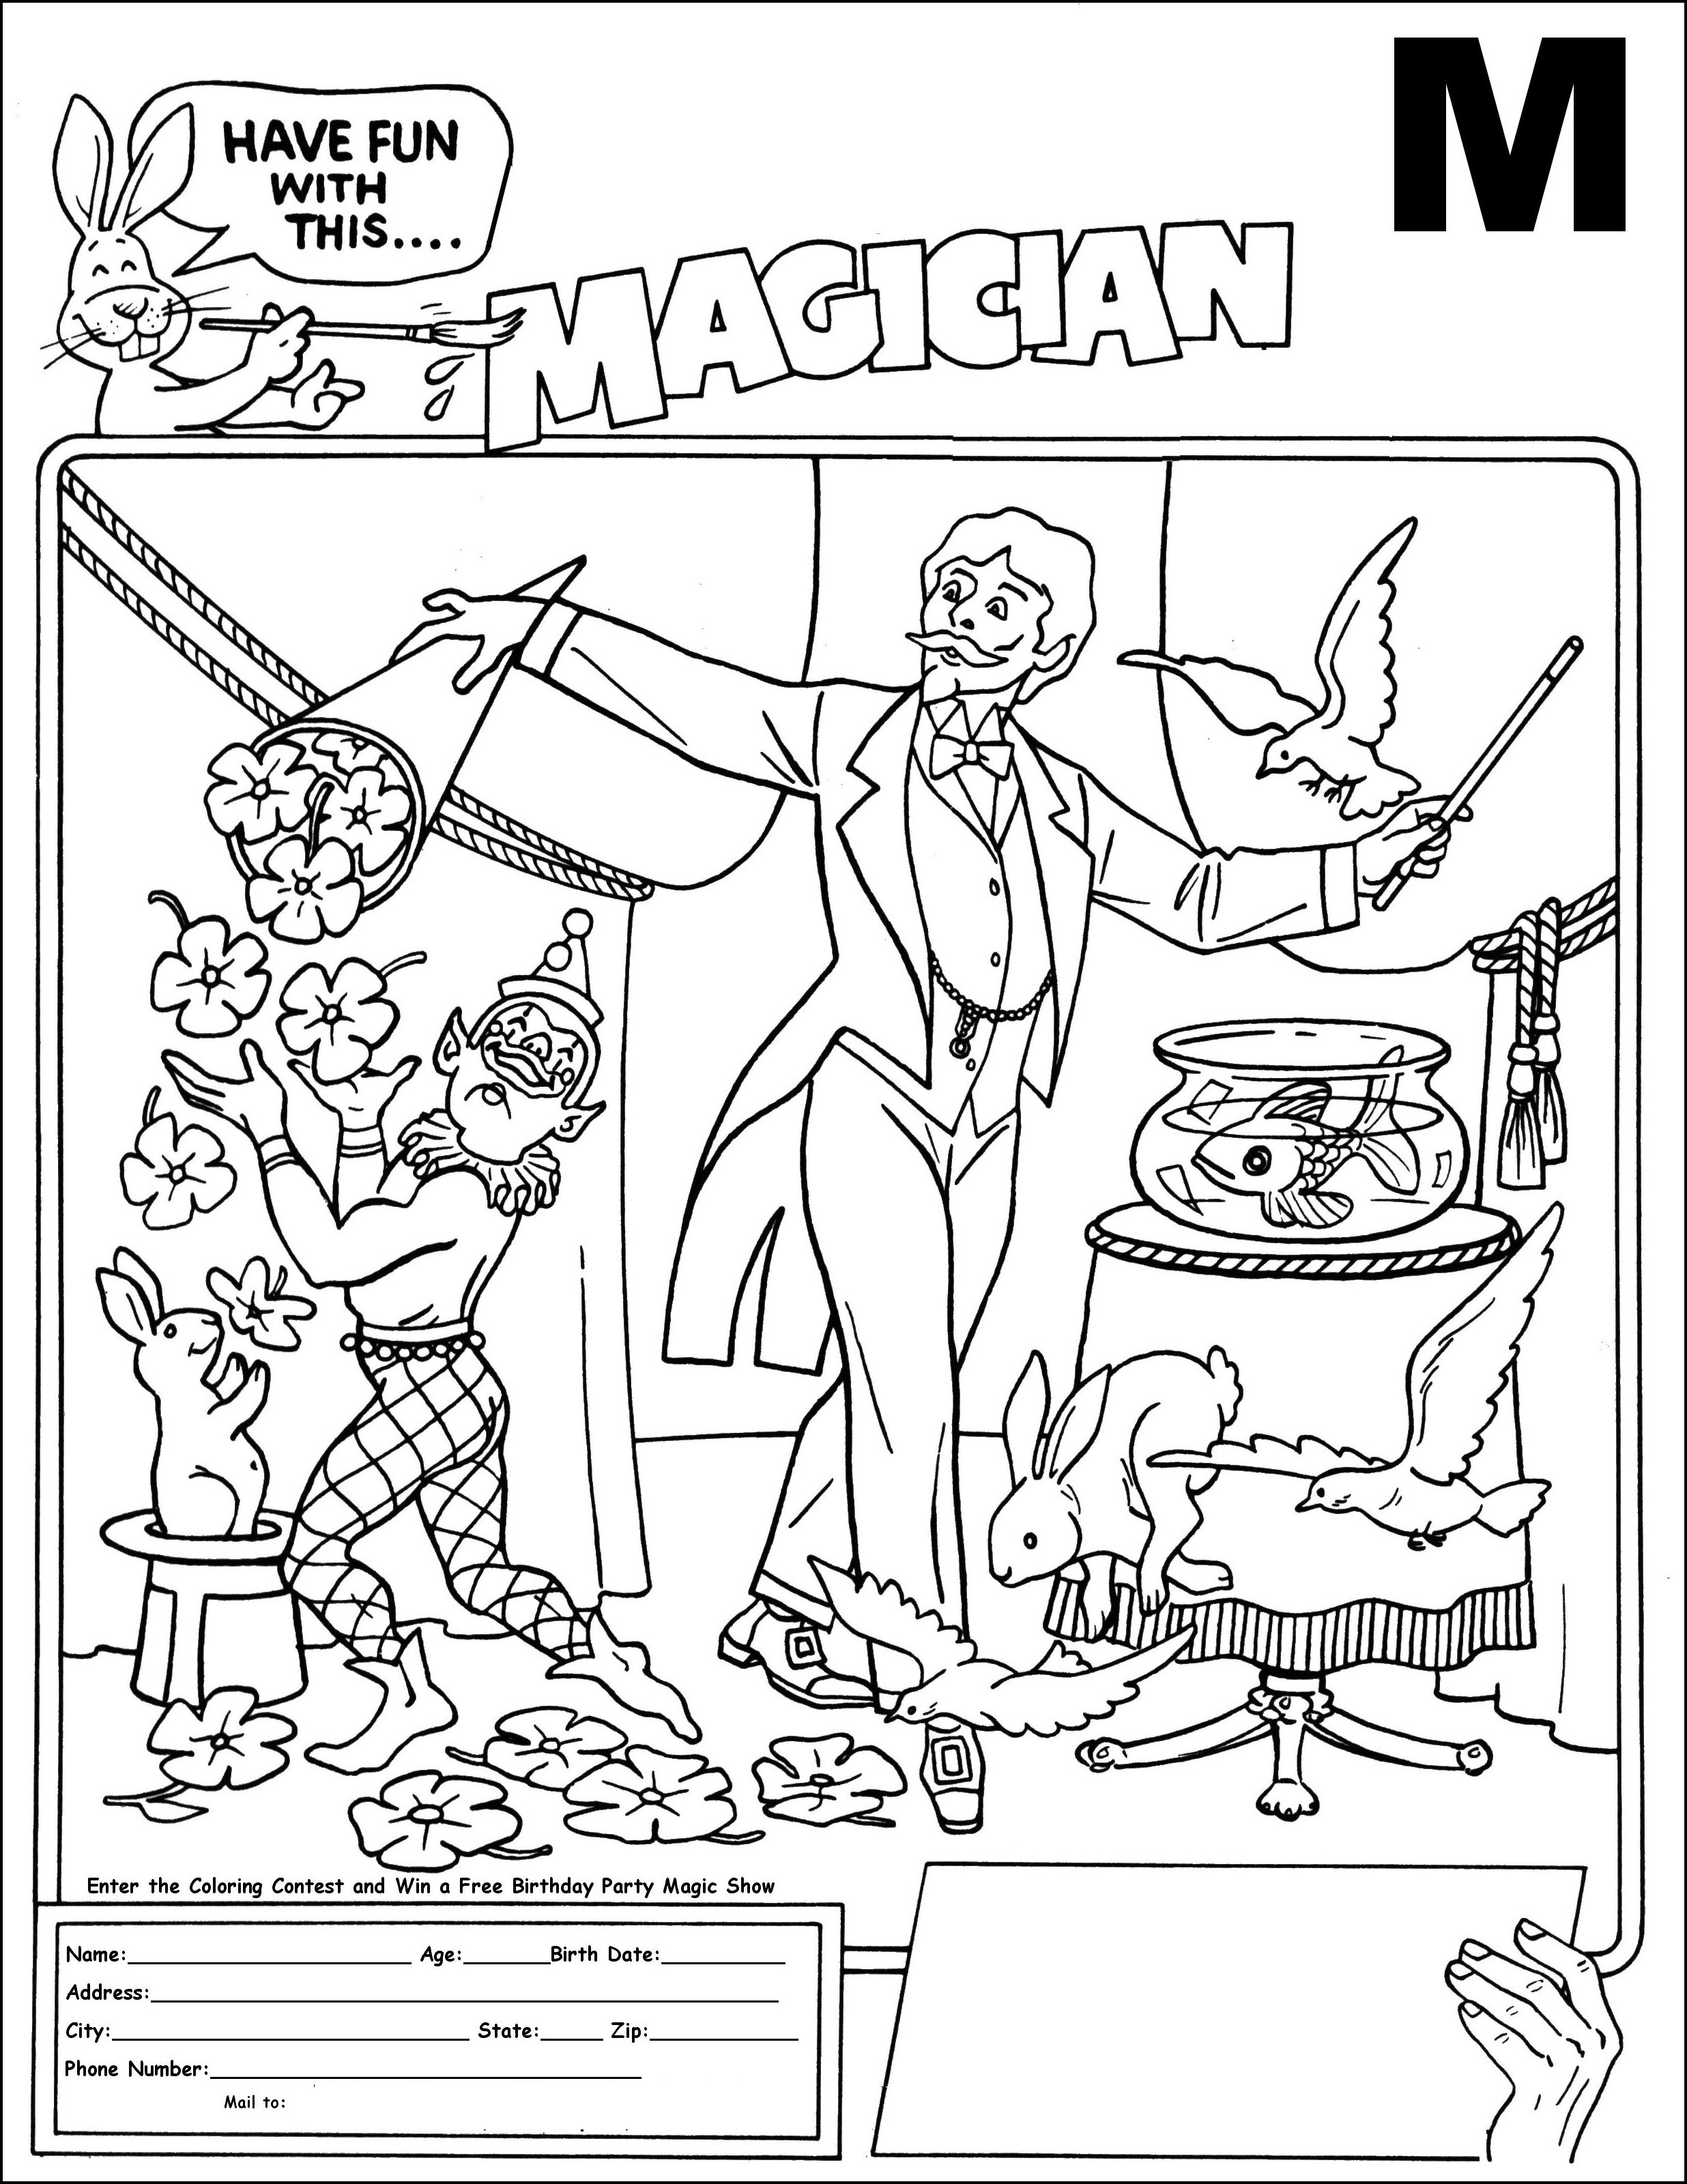 Magician coloring pages ~ Magician coloring, Download Magician coloring for free 2019